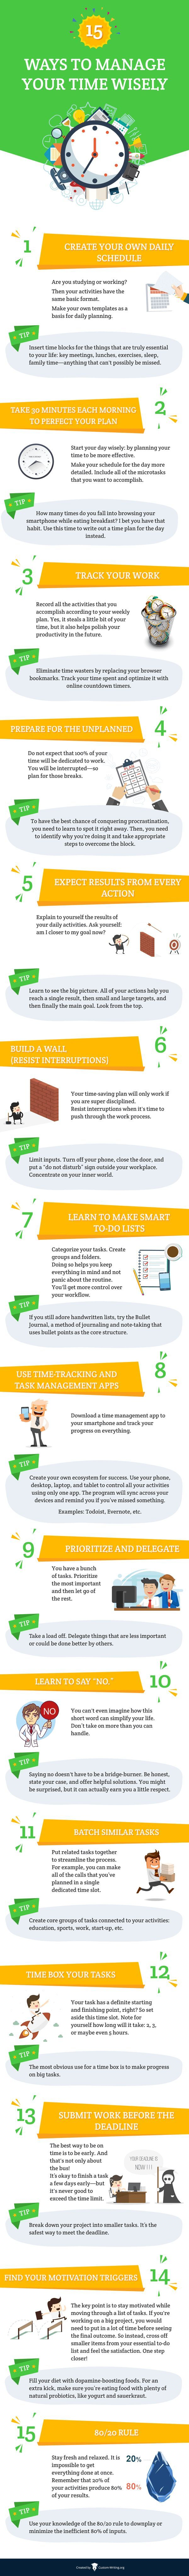 Productivity tips: Time management is crucial to your success. Win with the tips on this infographic! Click to blog for more small business tips and resources. #productivity #smallbusiness #career #goalsetting #successtips #entrepreneurship